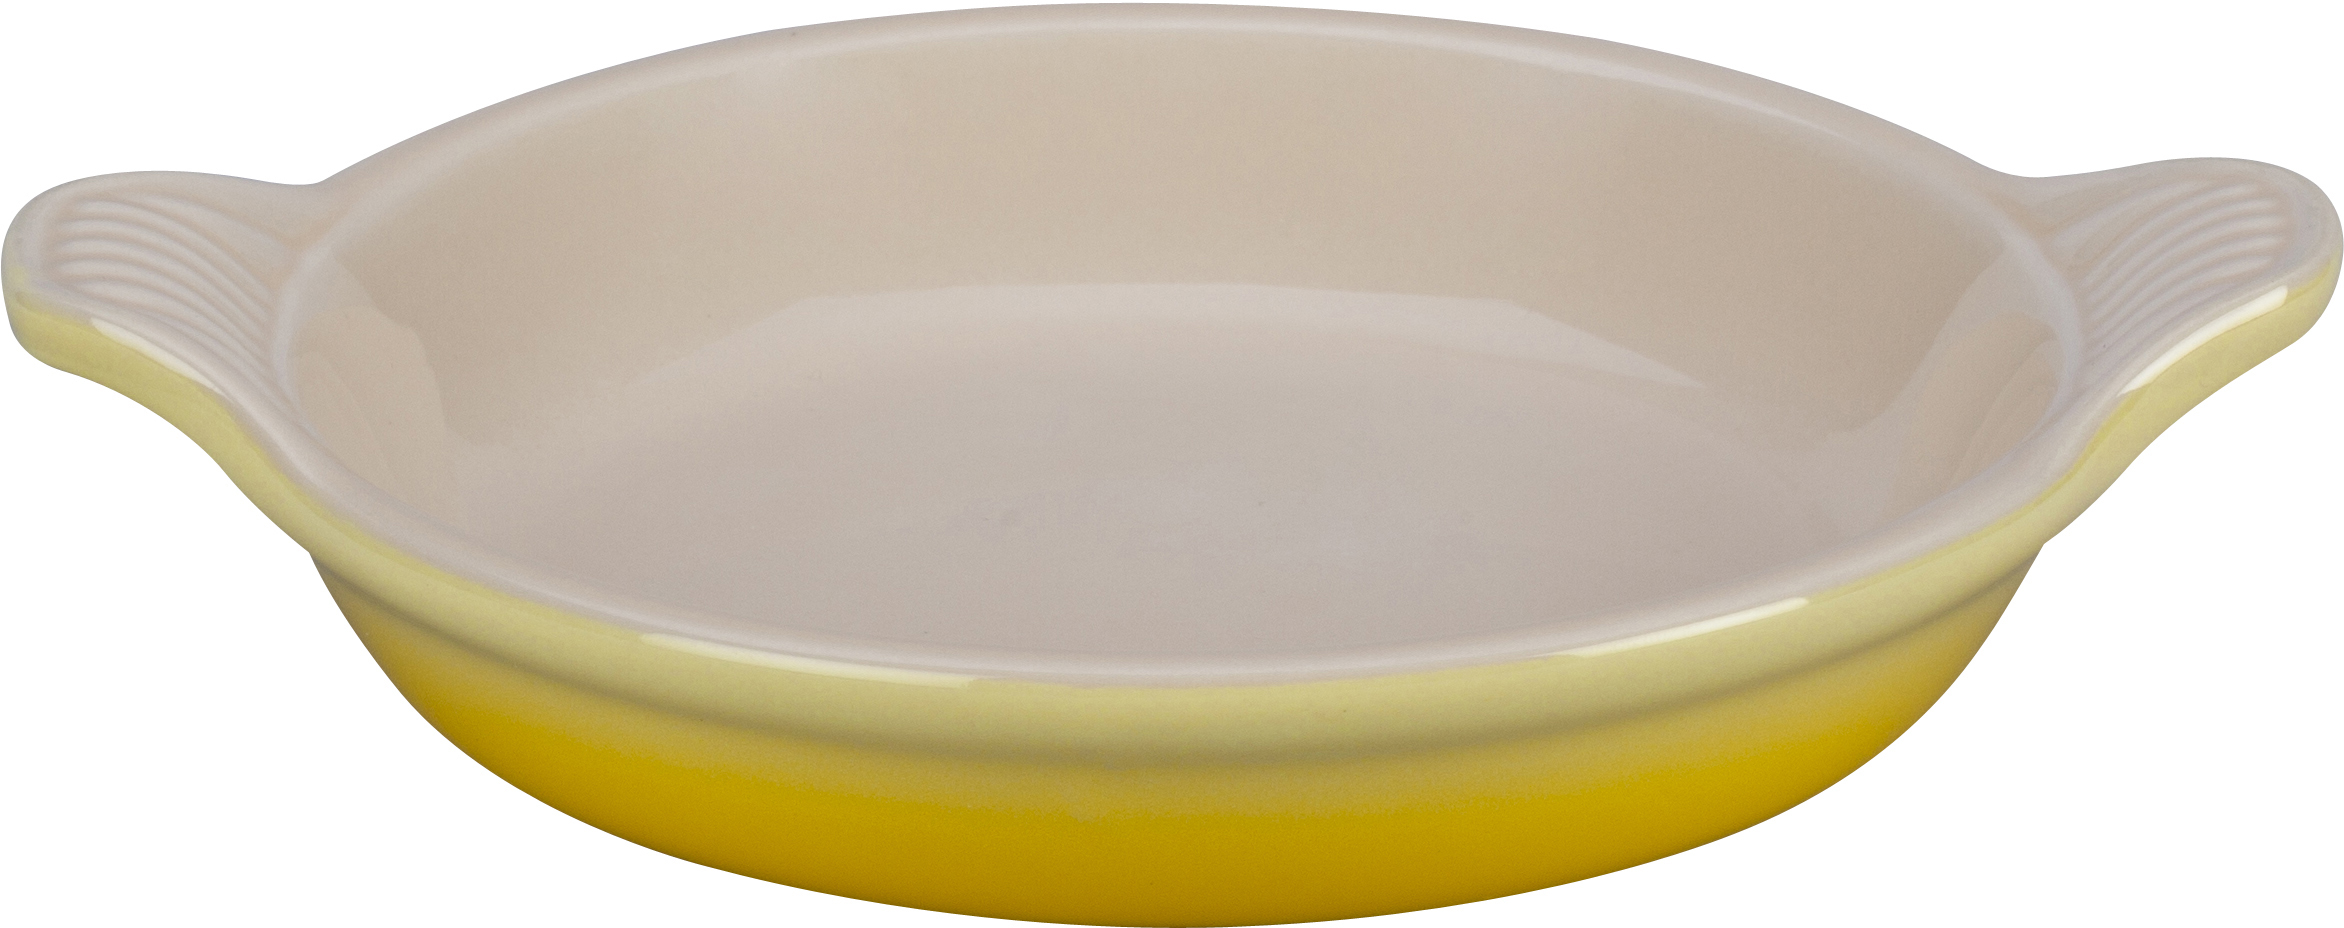 Le Creuset Soleil Yellow Stoneware Creme Brulee Dish, 7 Ounce